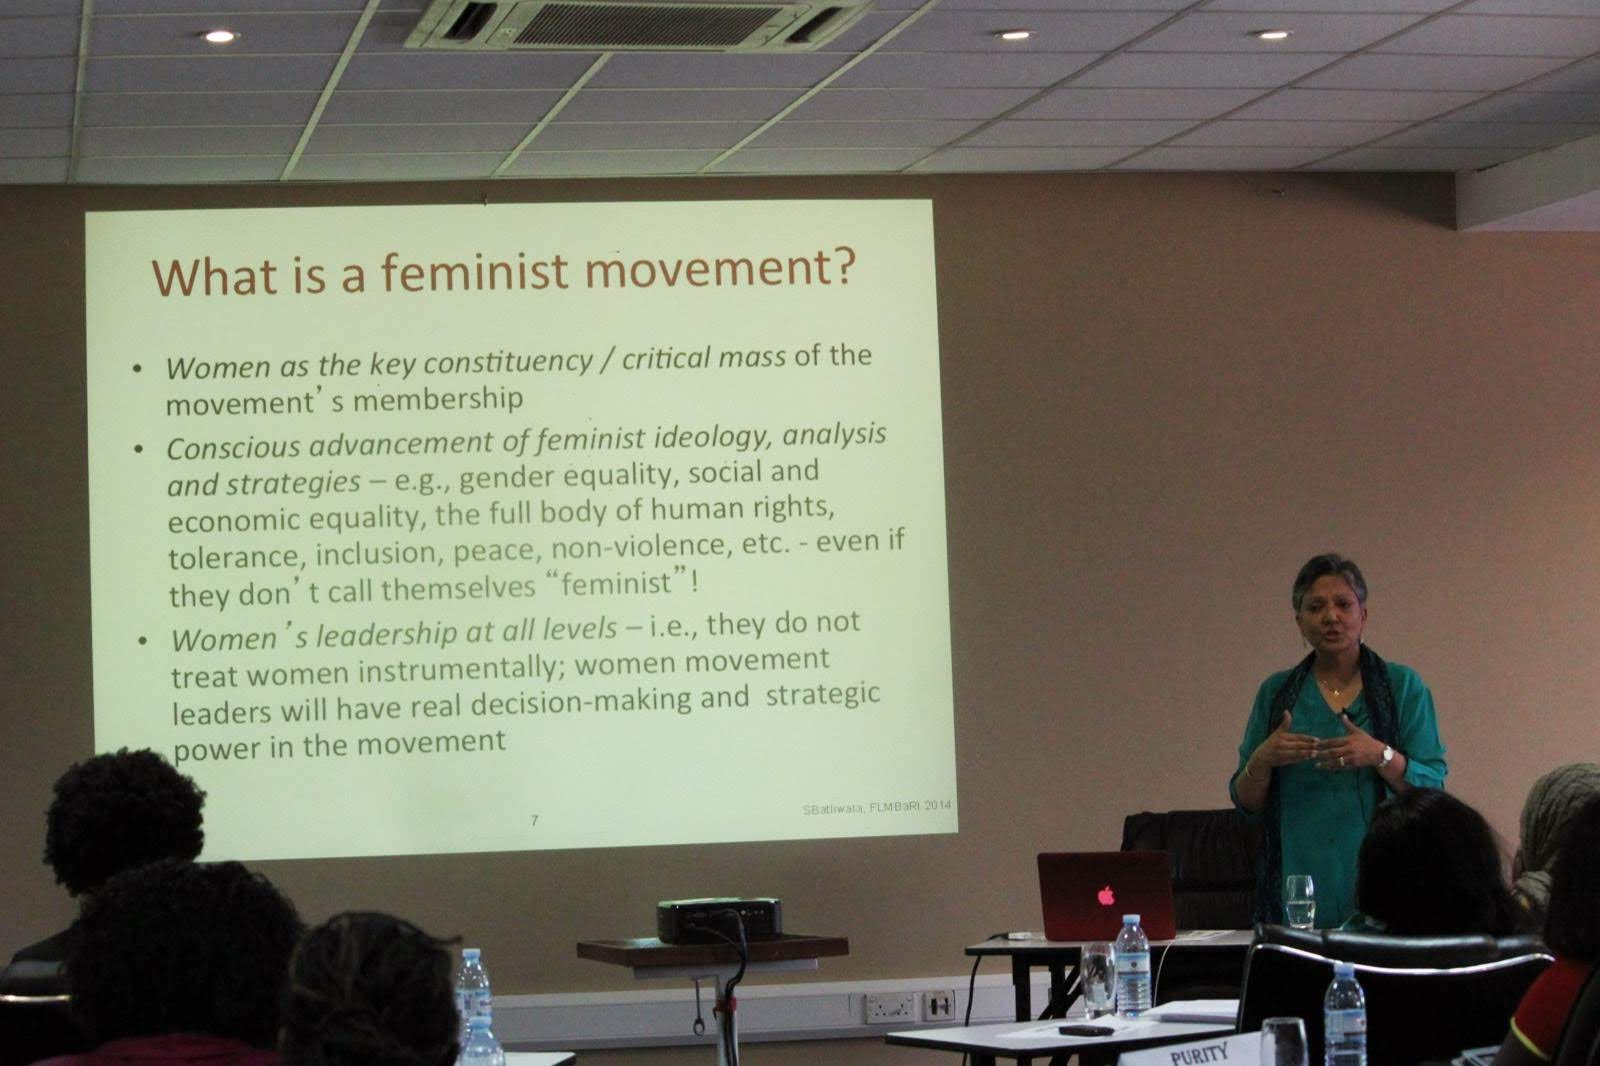 What is a feminist movement?